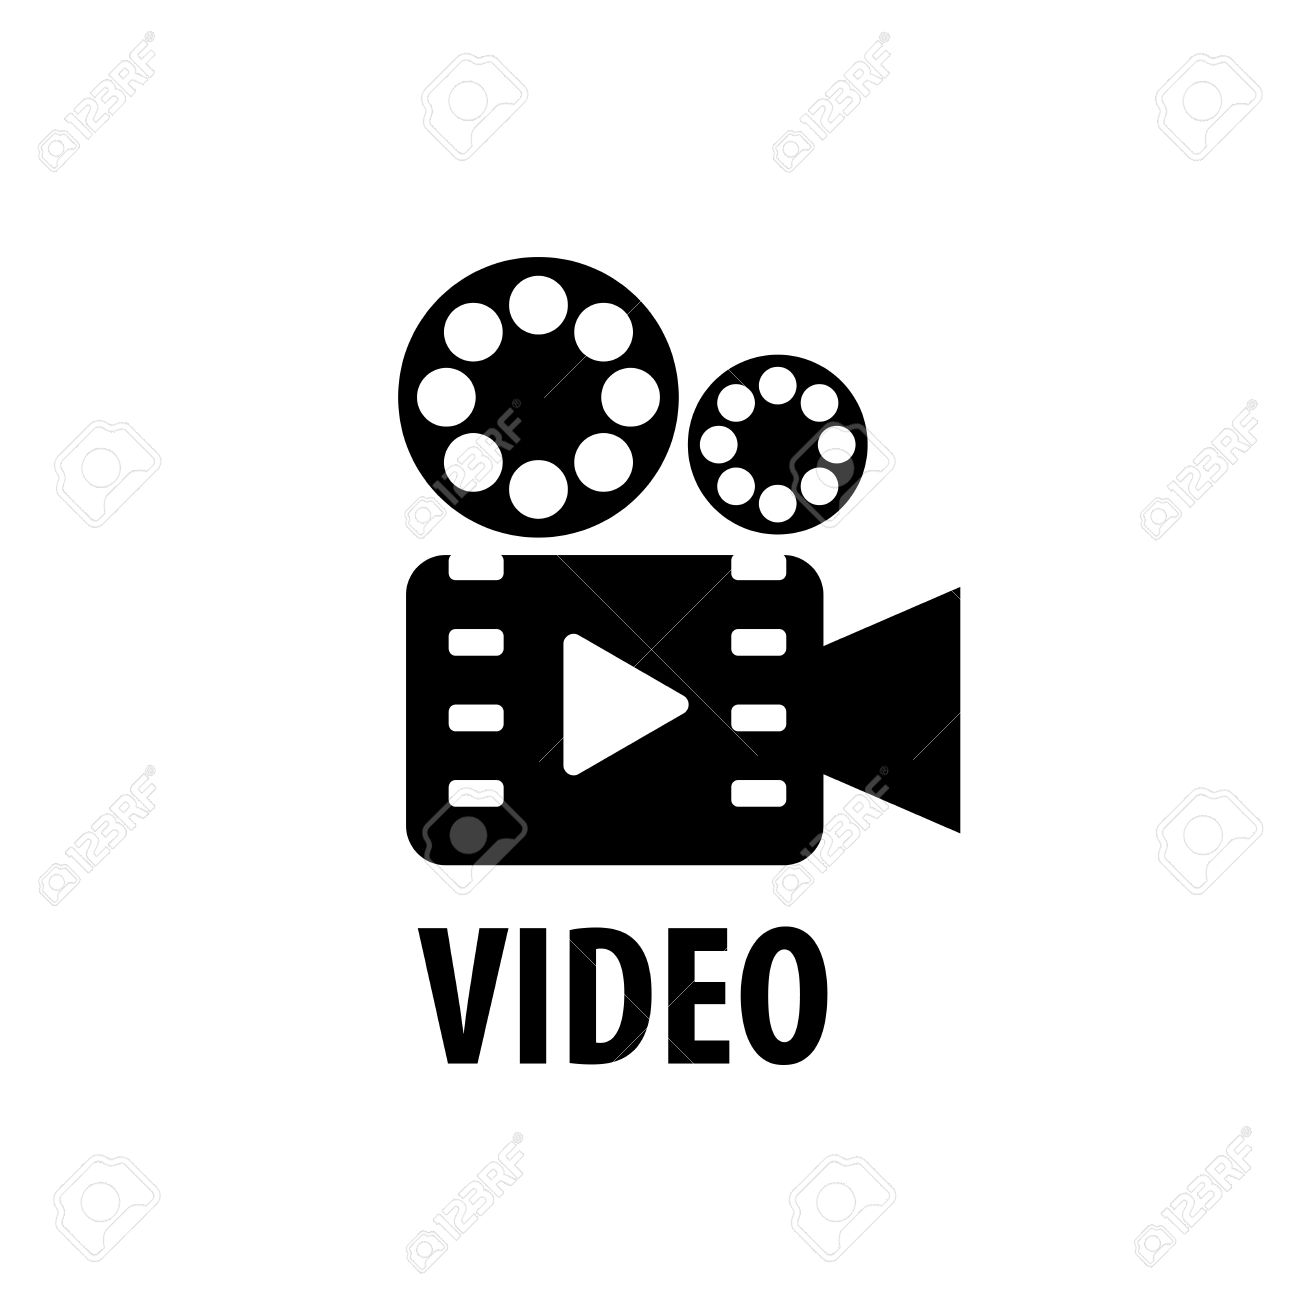 Video Camera Logo Design Template. Vector Illustration Royalty.